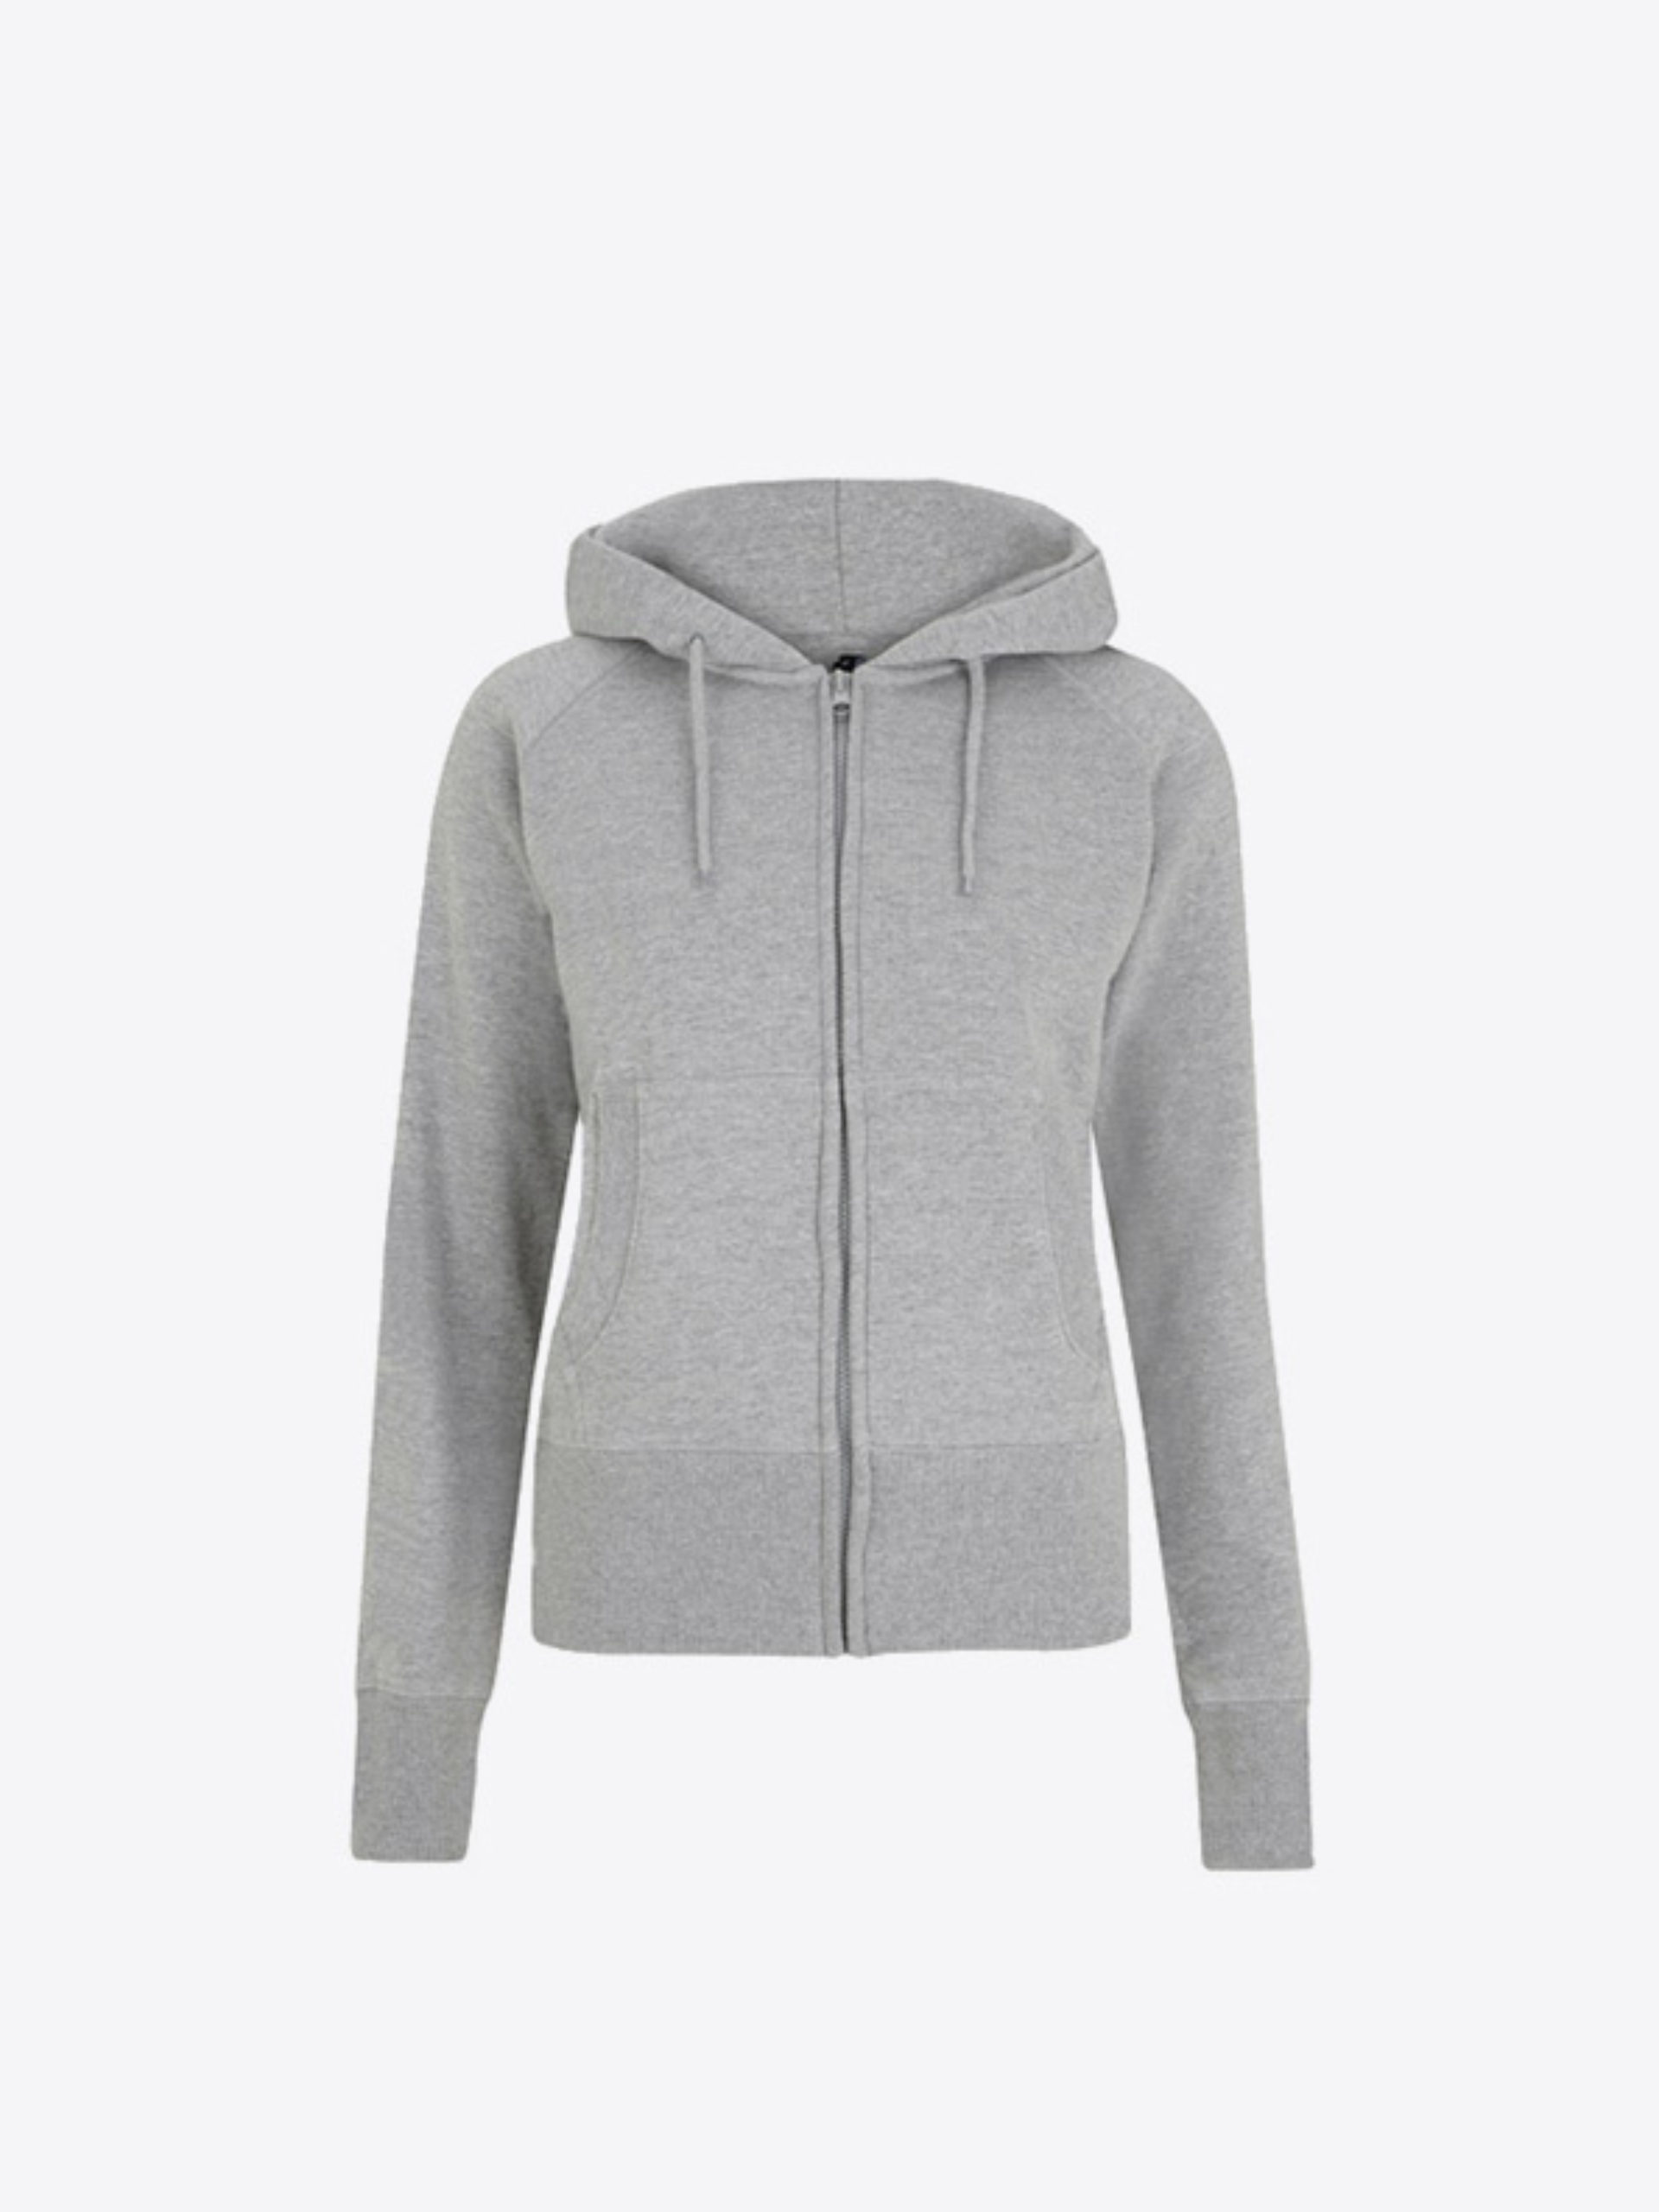 Damen Sweatshirt Mit Kapuze Besticken Lassen Continental N53z Light Heather